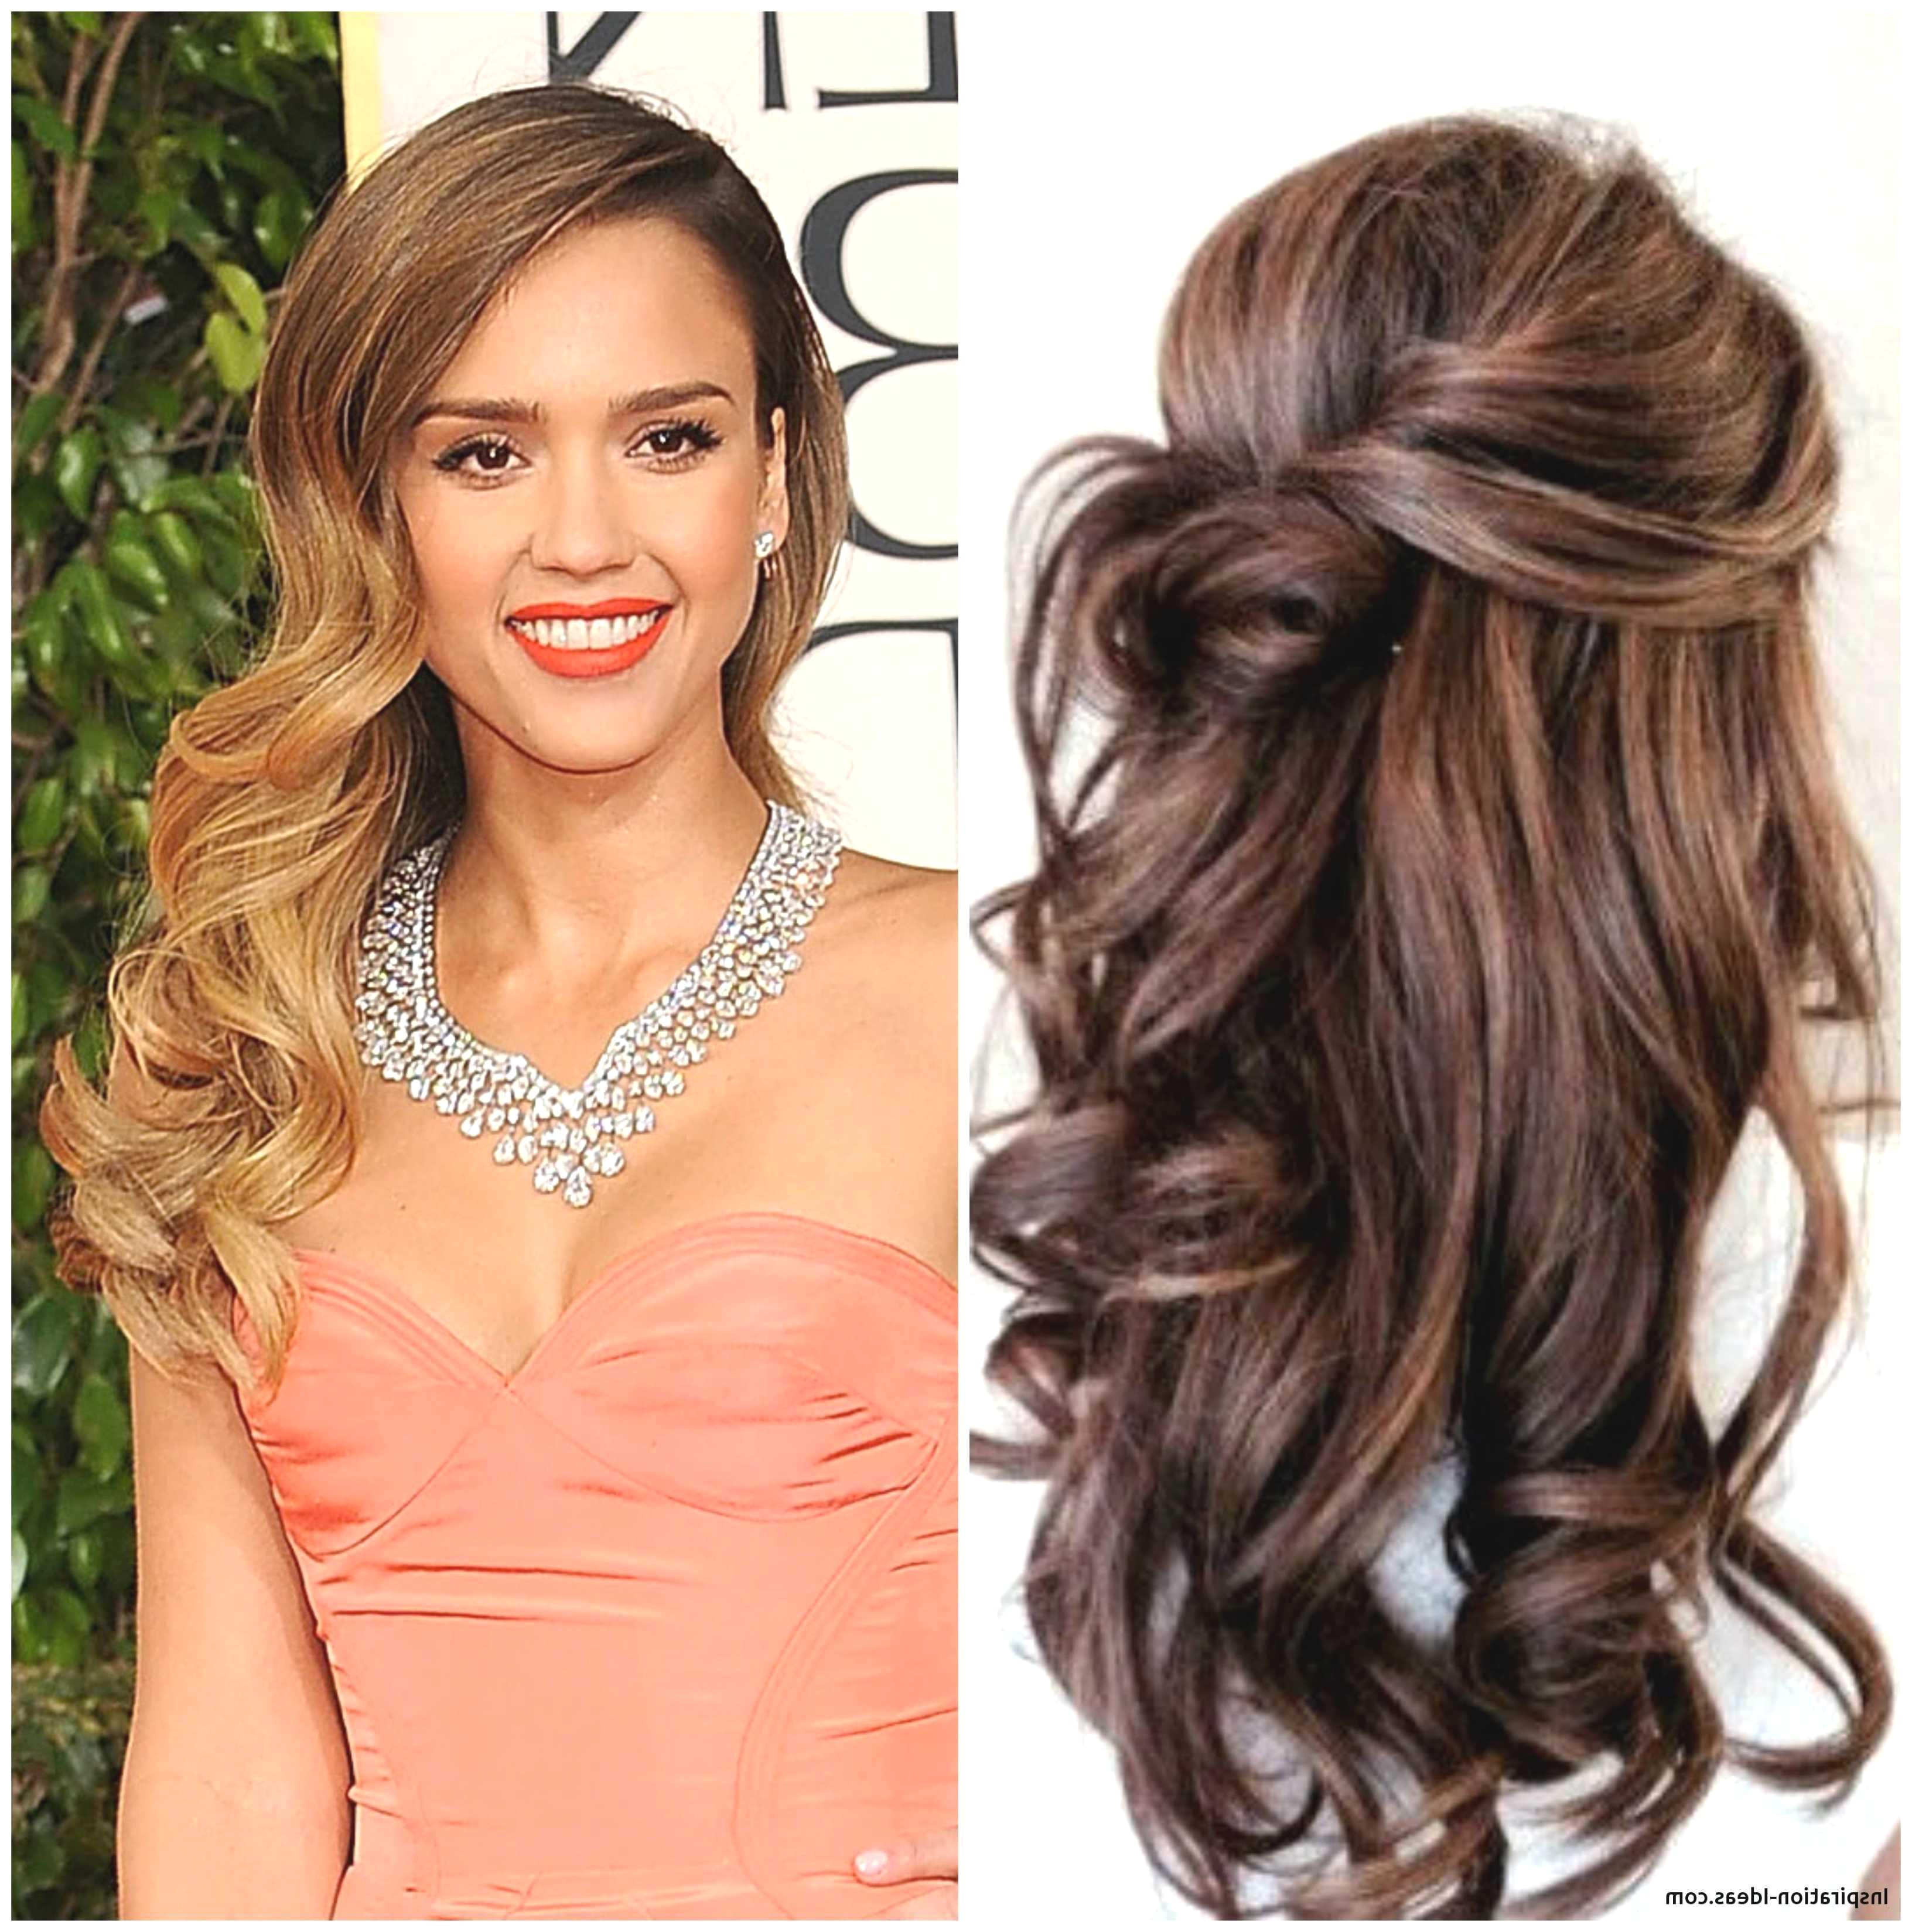 Coolest Hairstyles for Girls Inspirational New Different Hairstyles for Girls with Names Ideas Coolest Hairstyles